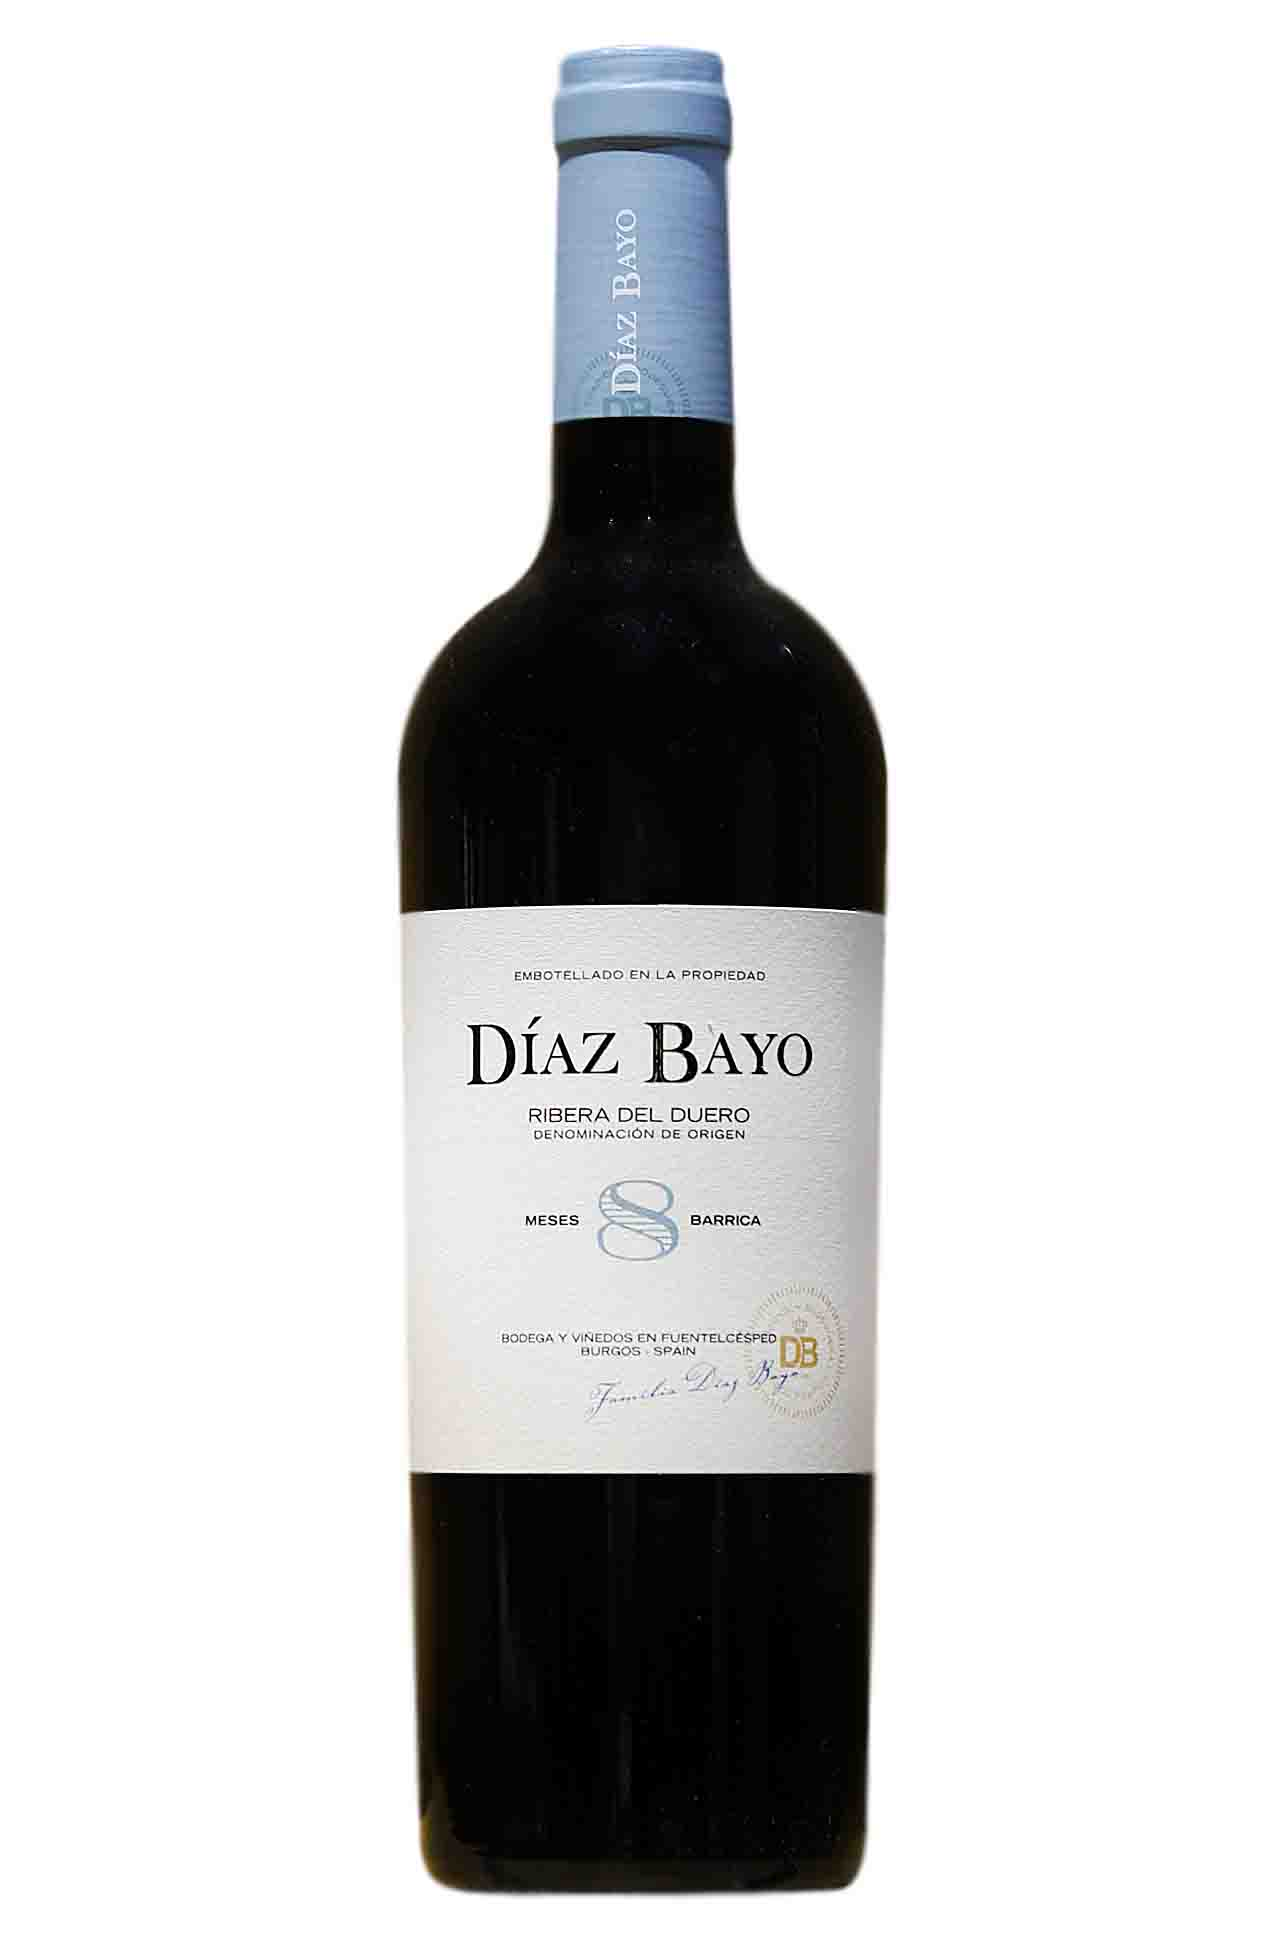 Diaz Bayo red wine